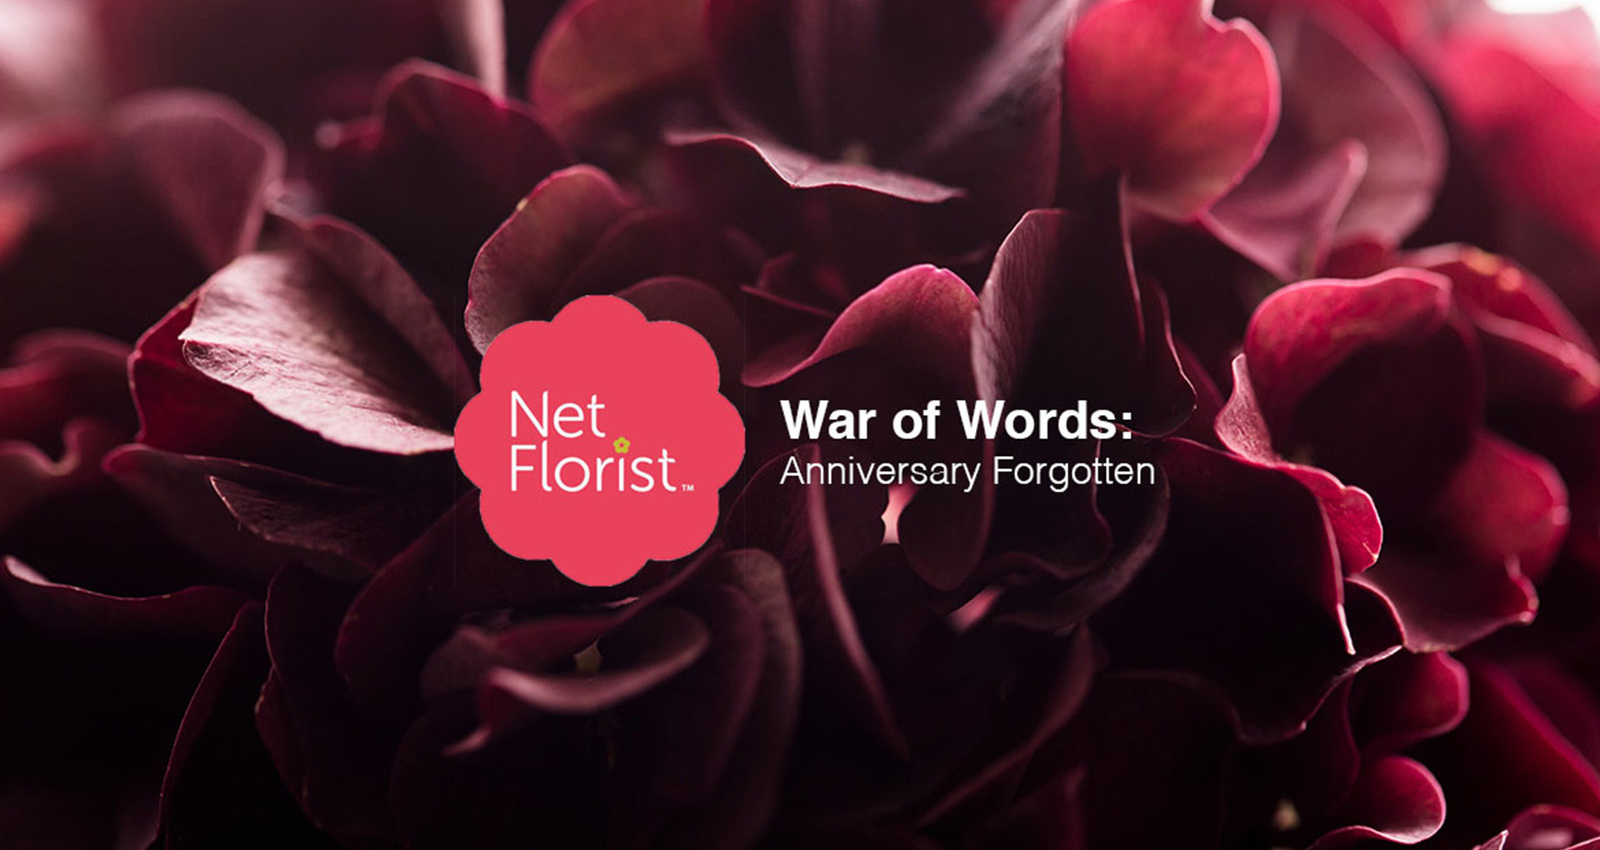 A War of Words - Anniversary Forgotten